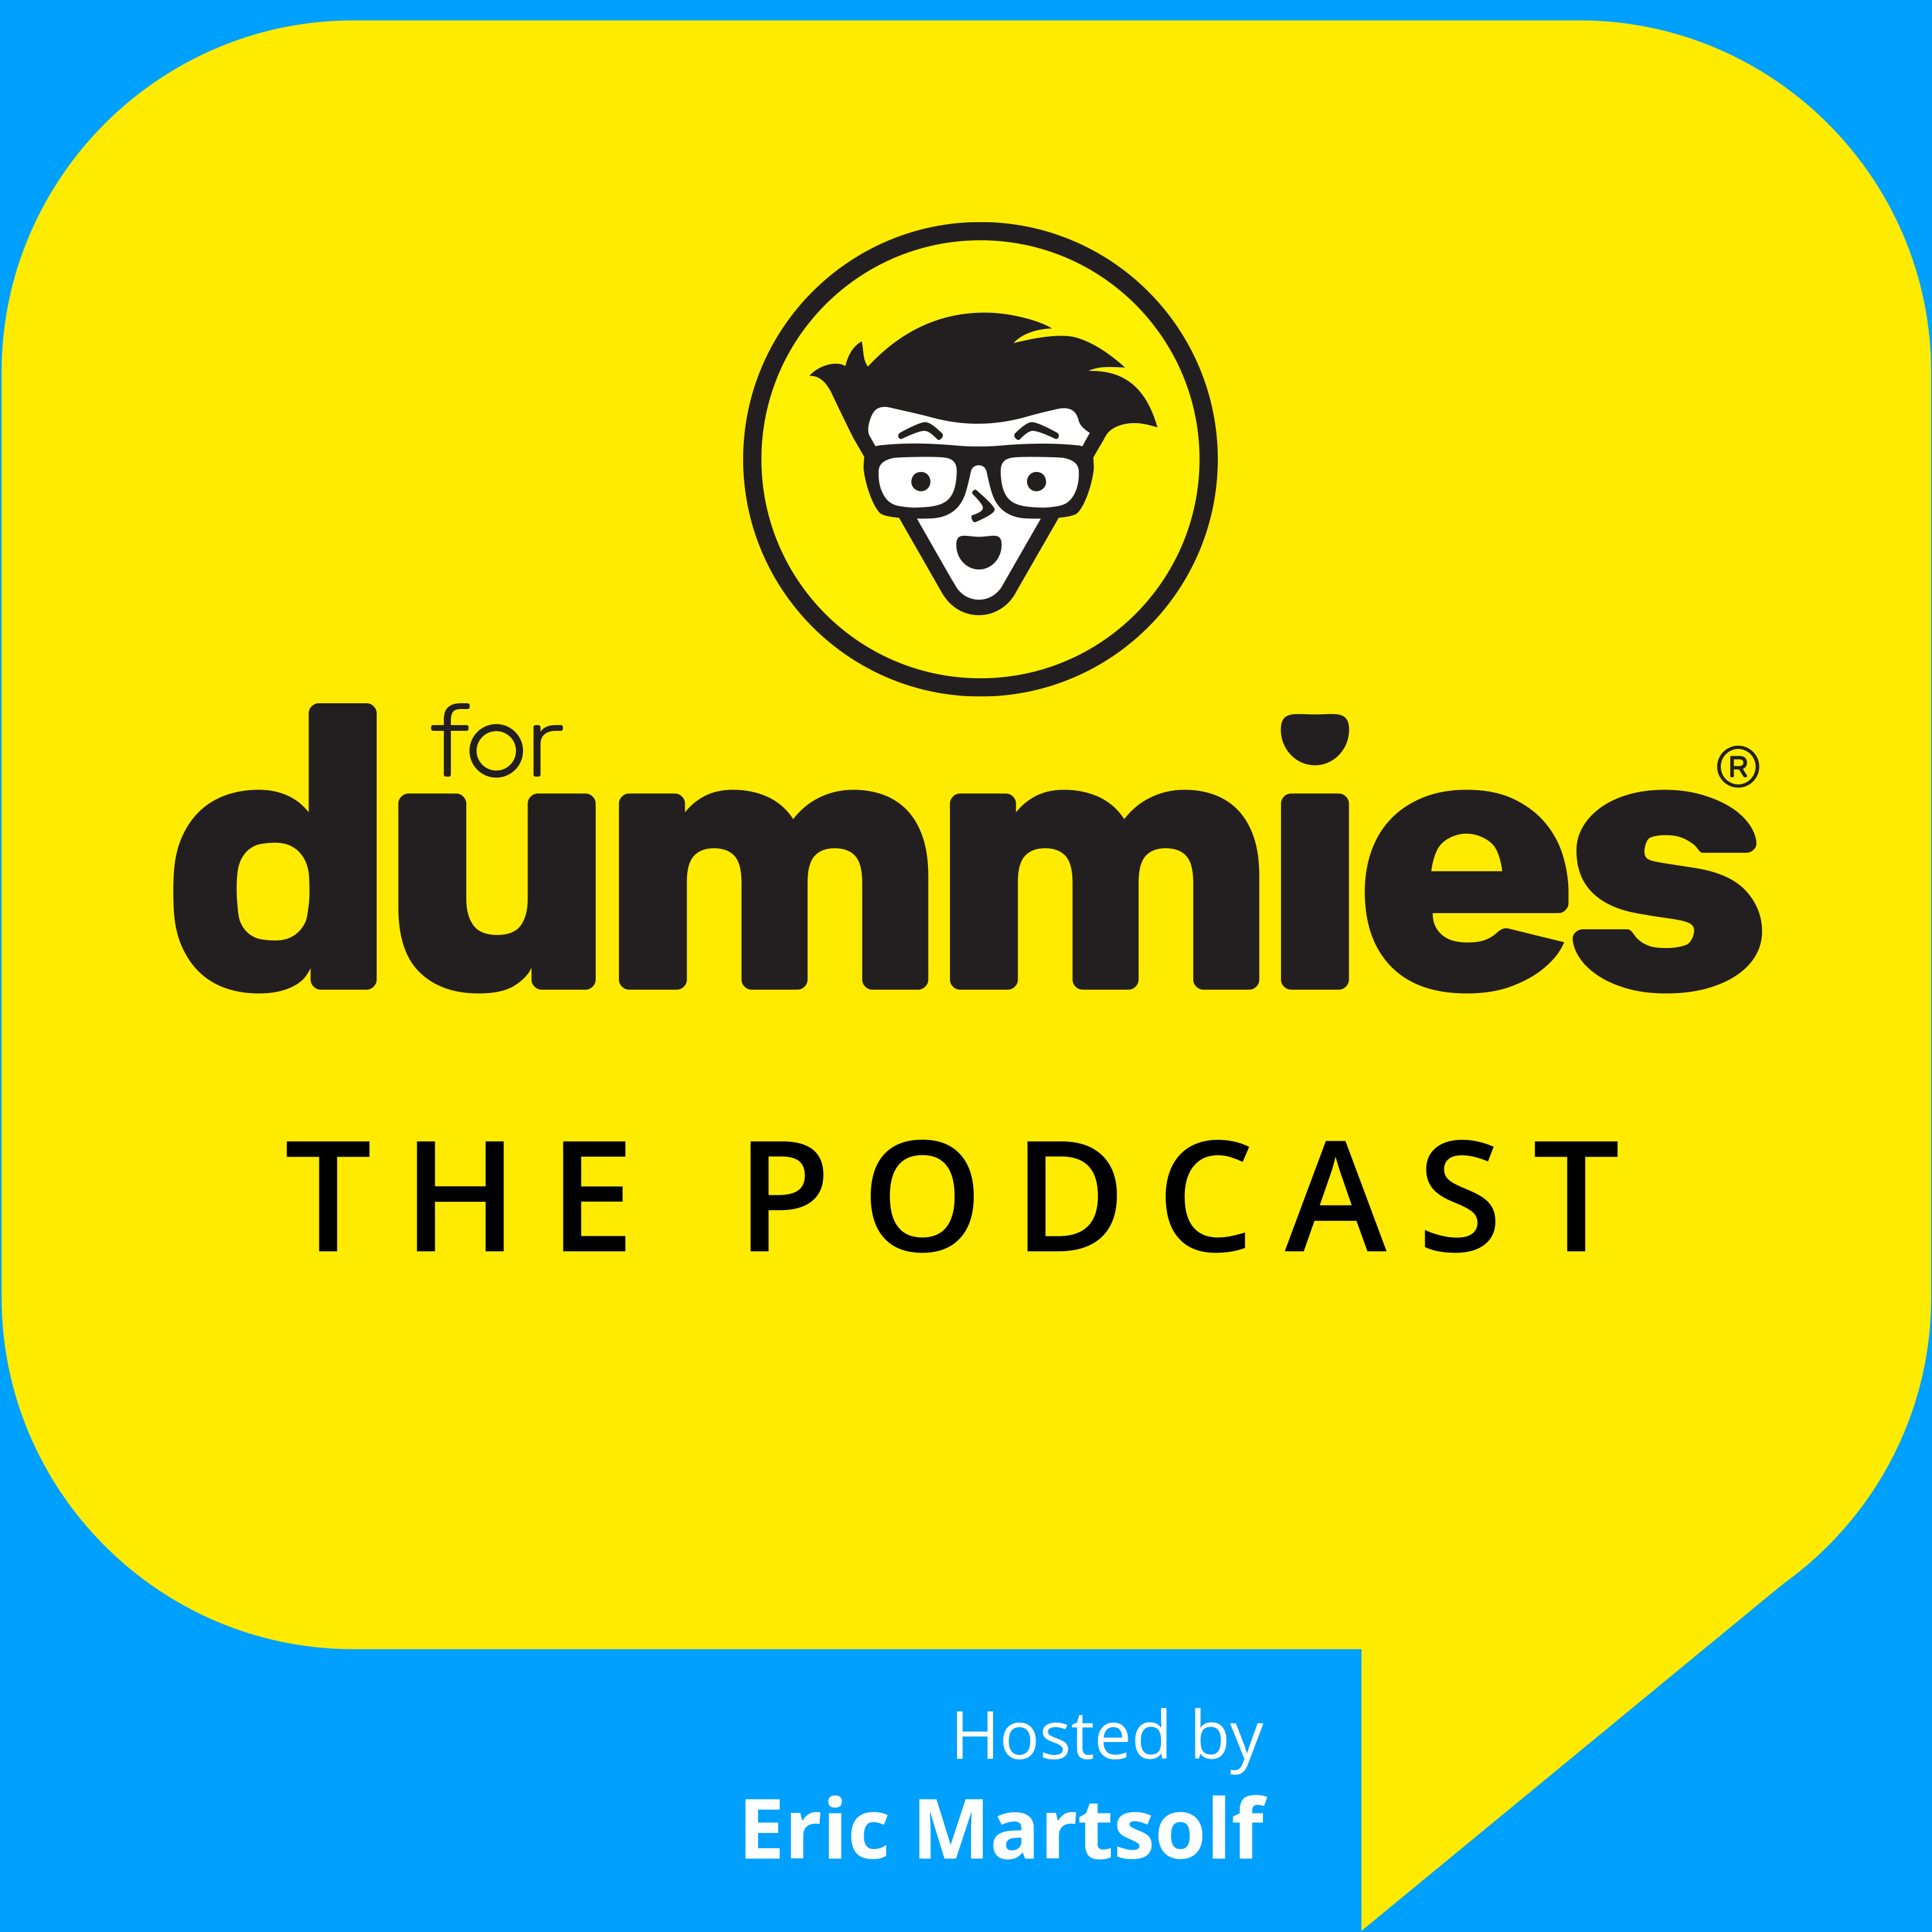 For Dummies most popular episode so far!